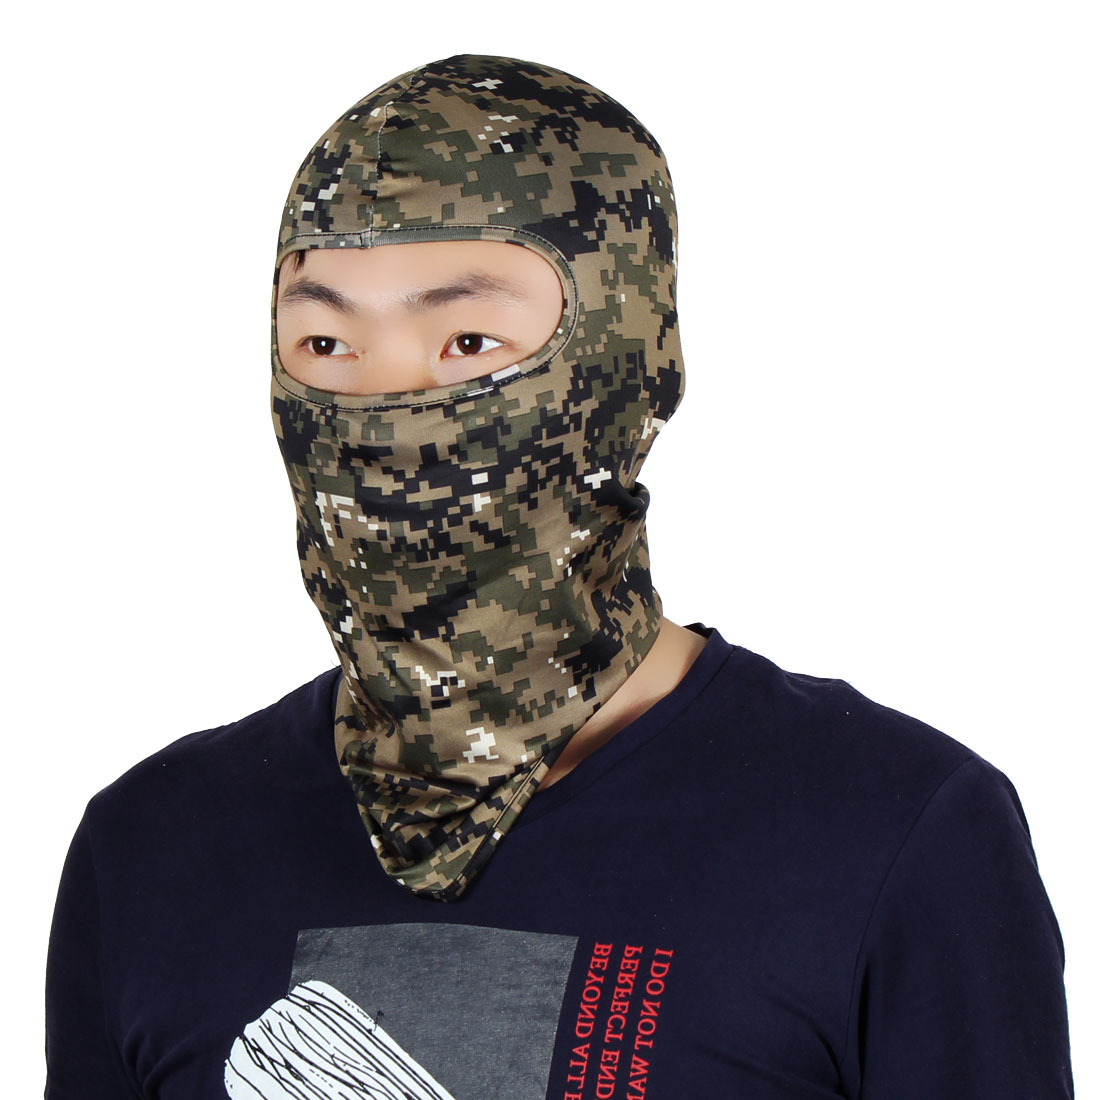 Full Coverage Mask Activities Neck Protector Hood Helmet Balaclava Army Green by Unique-Bargains